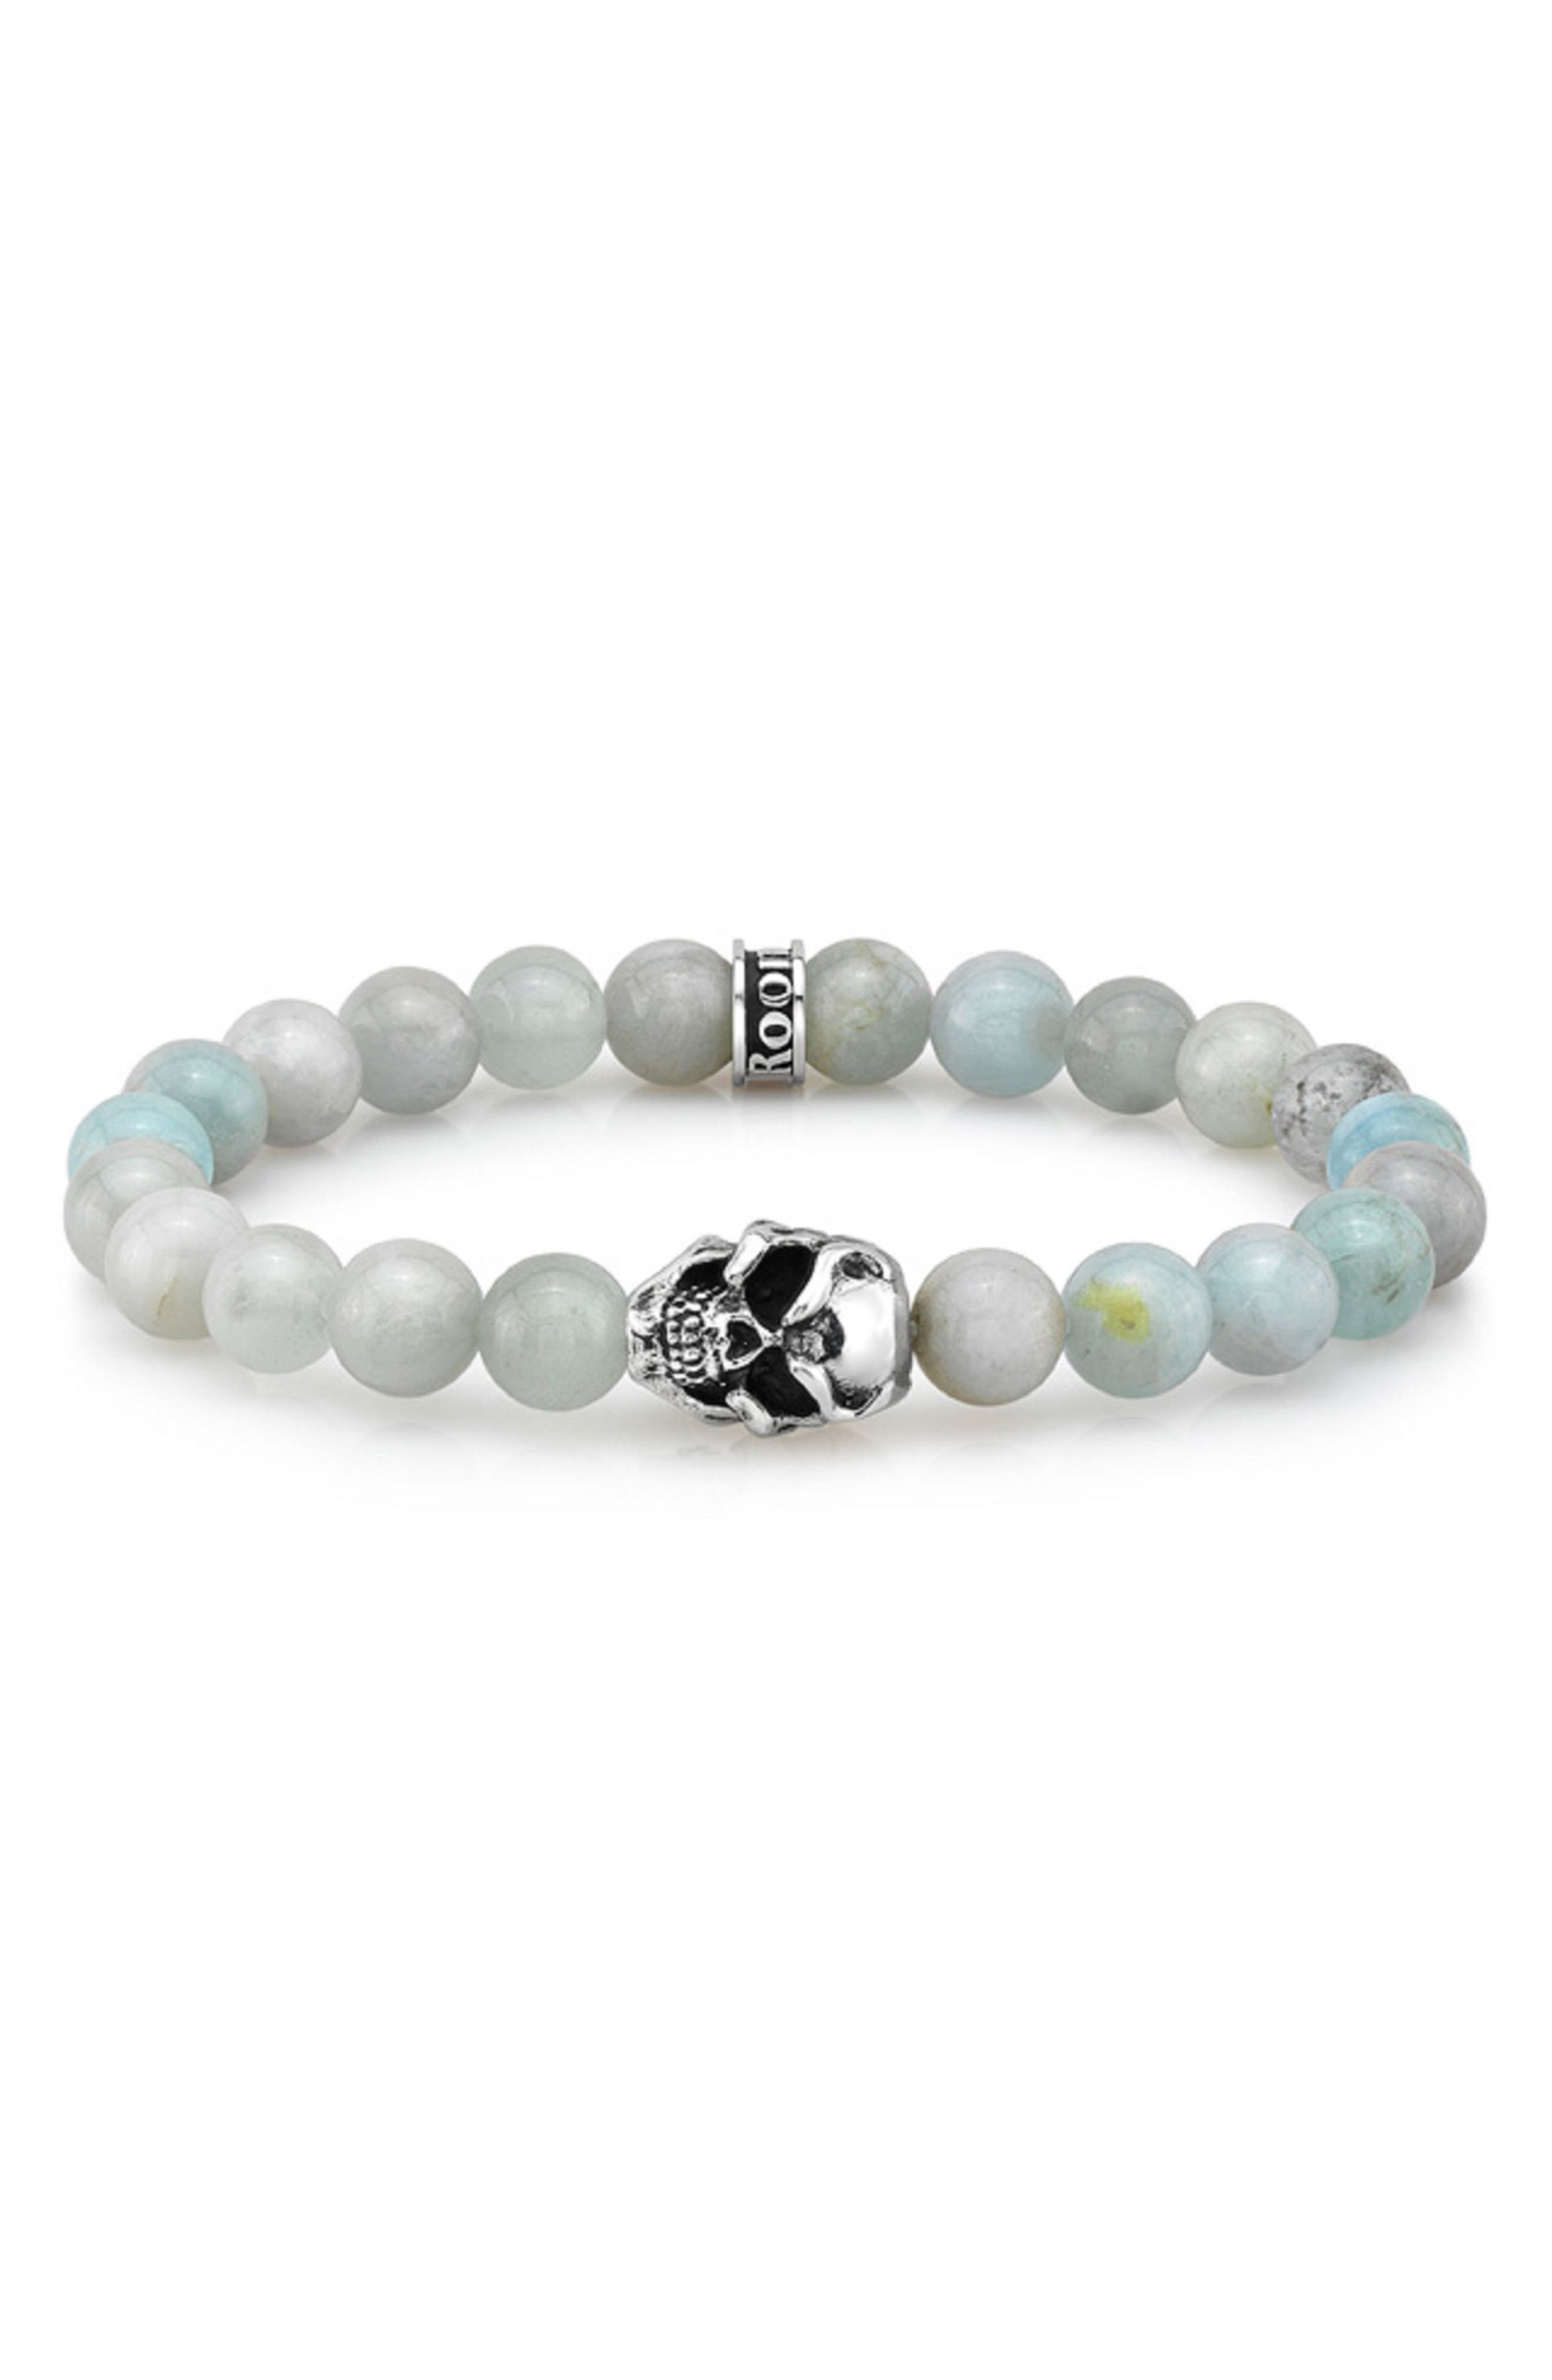 Main Image - Room 101 Aquamarine Bead Bracelet